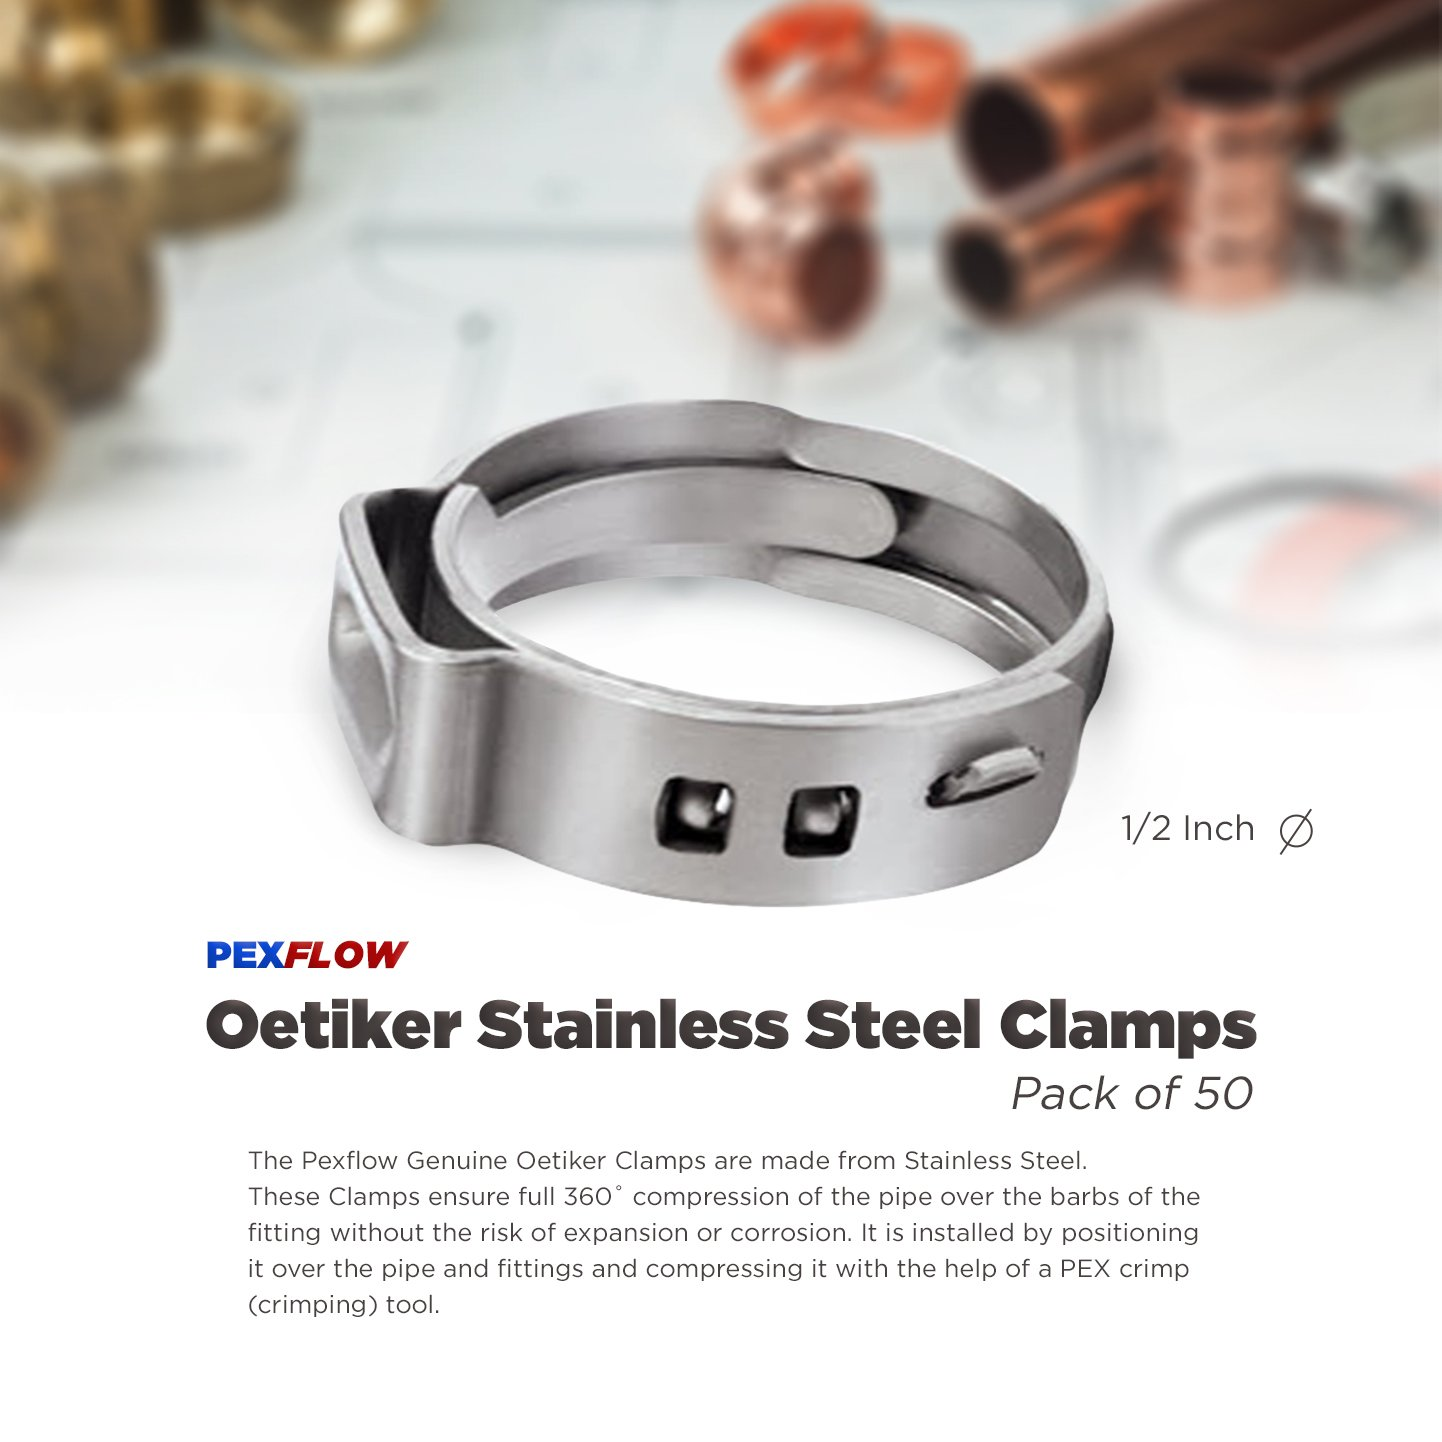 Pexflow PXKT-CR12-50 Oetiker Style Pinch Clamps Pex Cinch Rings, 1/2 INCH, Stainless Steel Pack of 50 by PEXFLOW (Image #3)